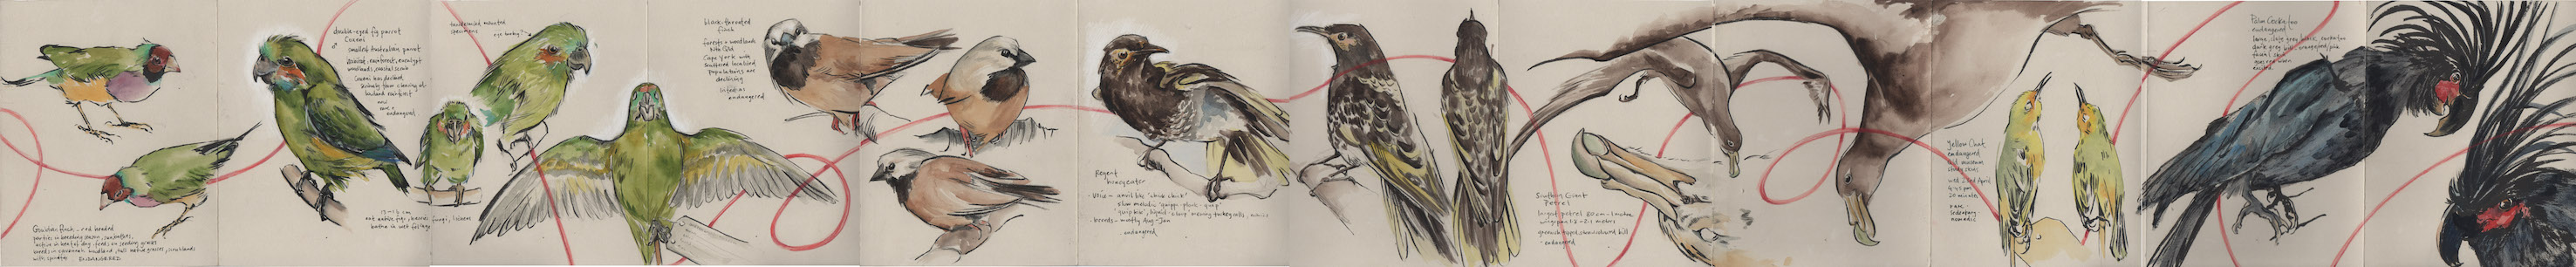 Redemption_Series_Birds_whole_sketchbook.jpg